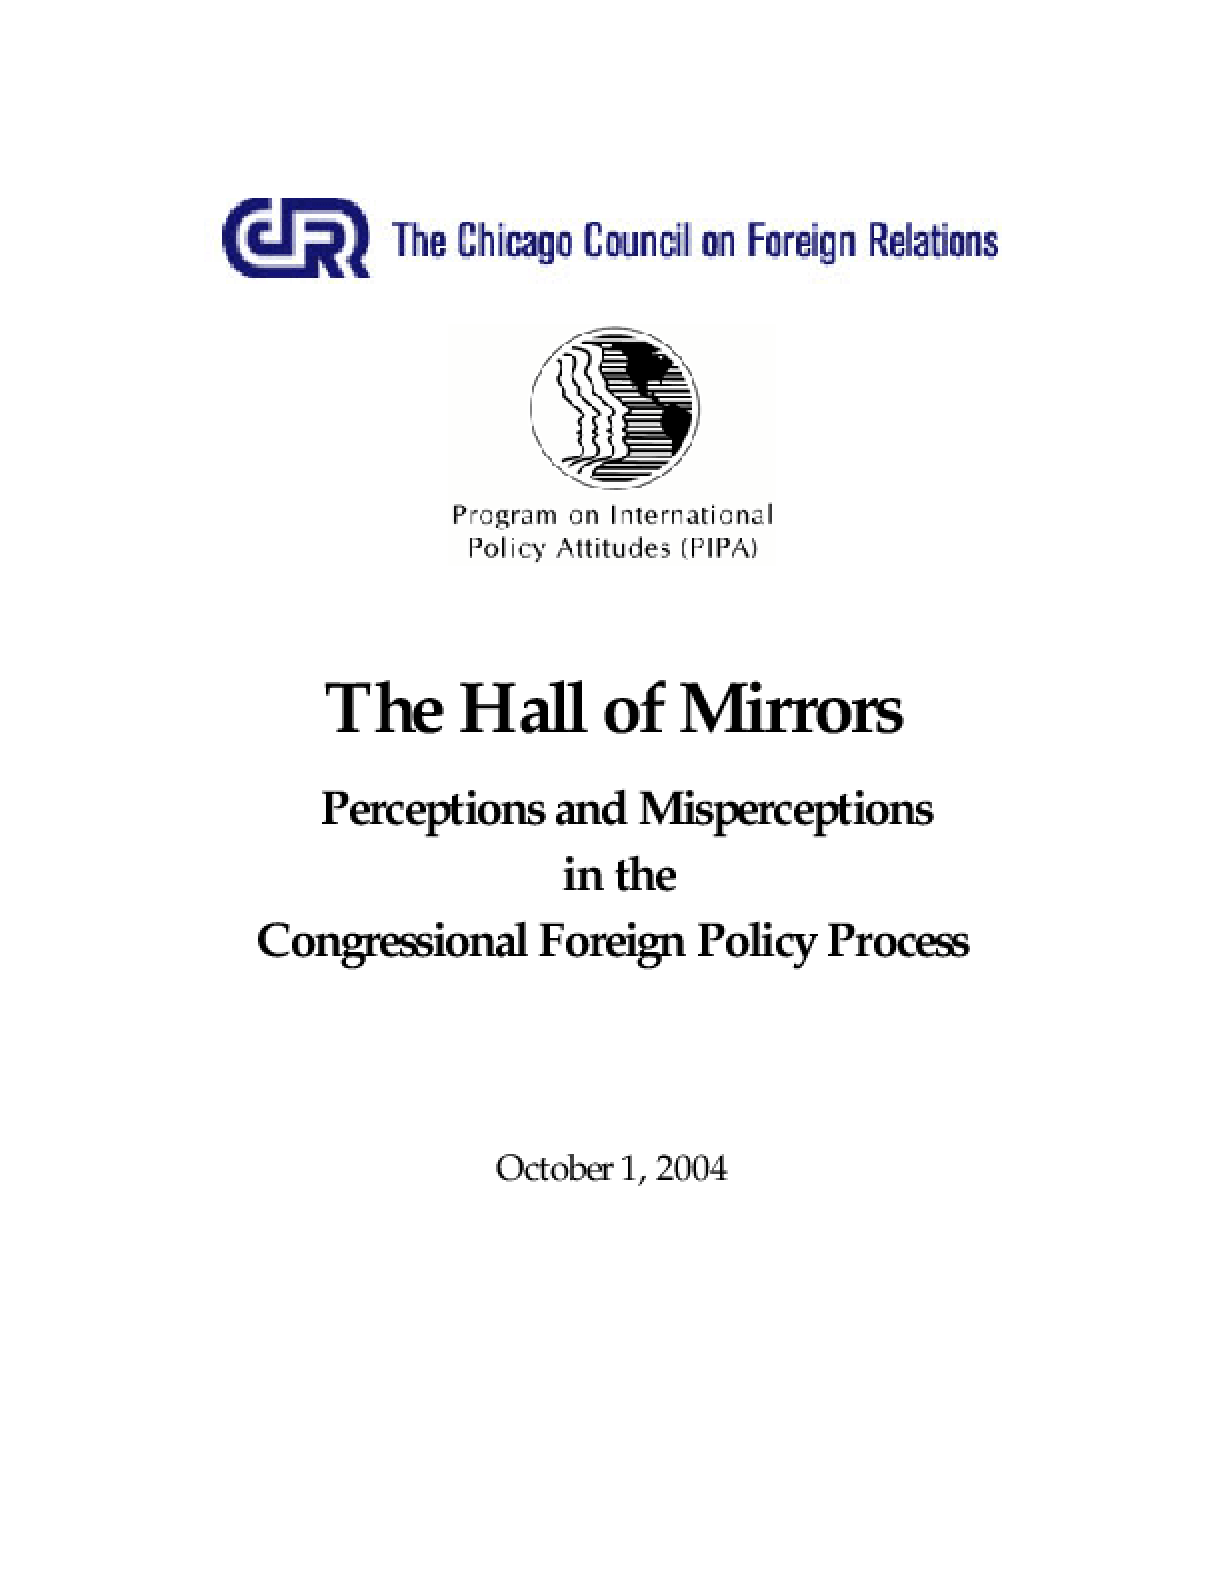 The Hall of Mirrors Perceptions and Misperceptions in the Congressional Foreign Policy Process